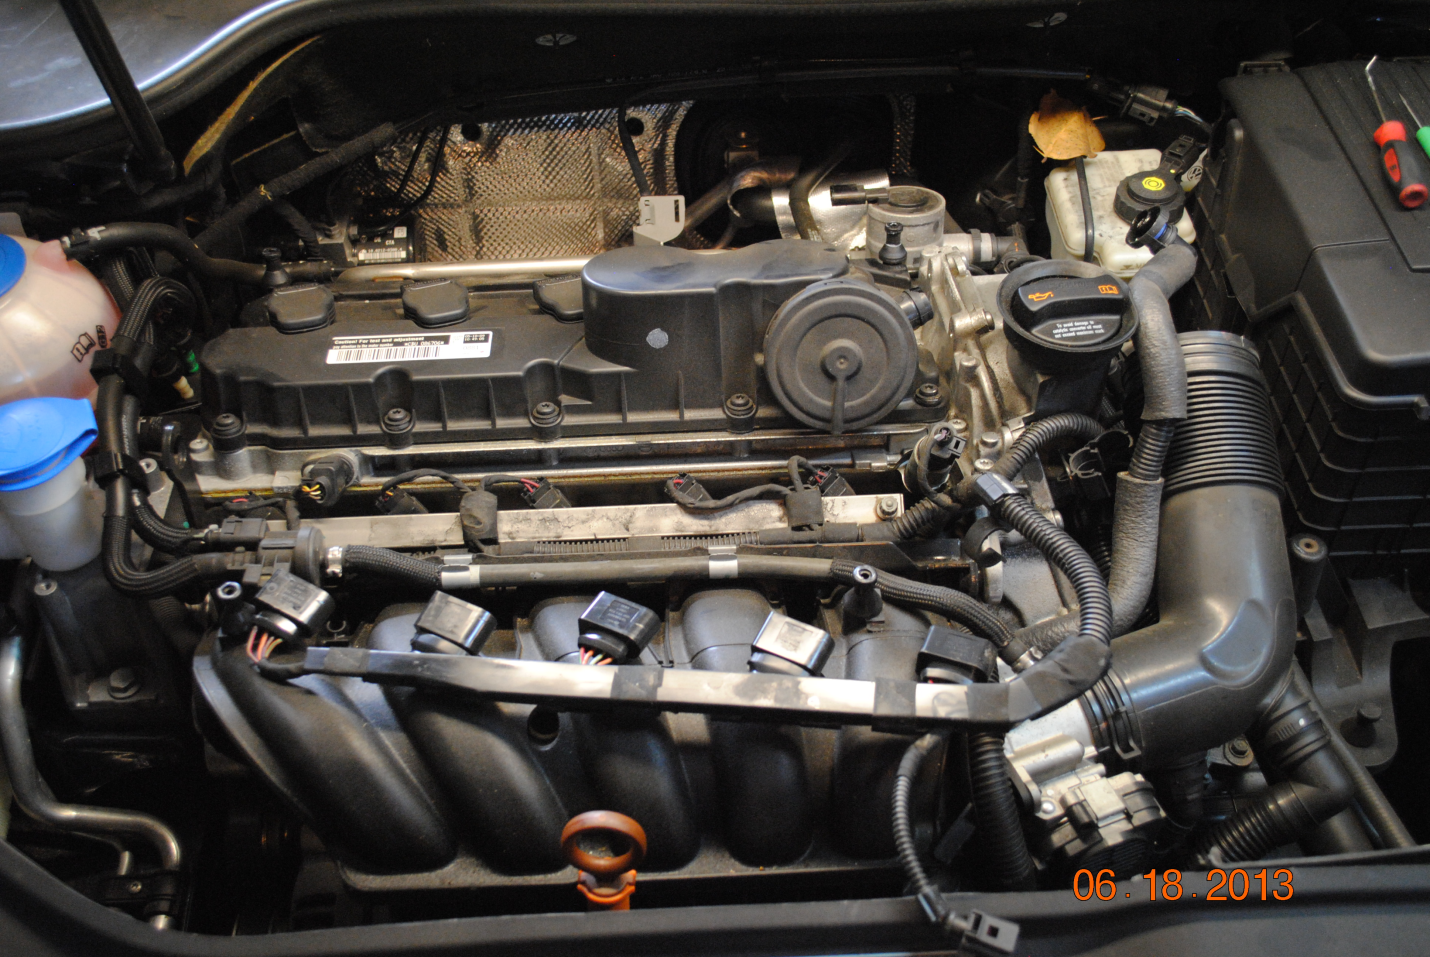 VW 2.5l 5 Cylinder Valve Cover DIY